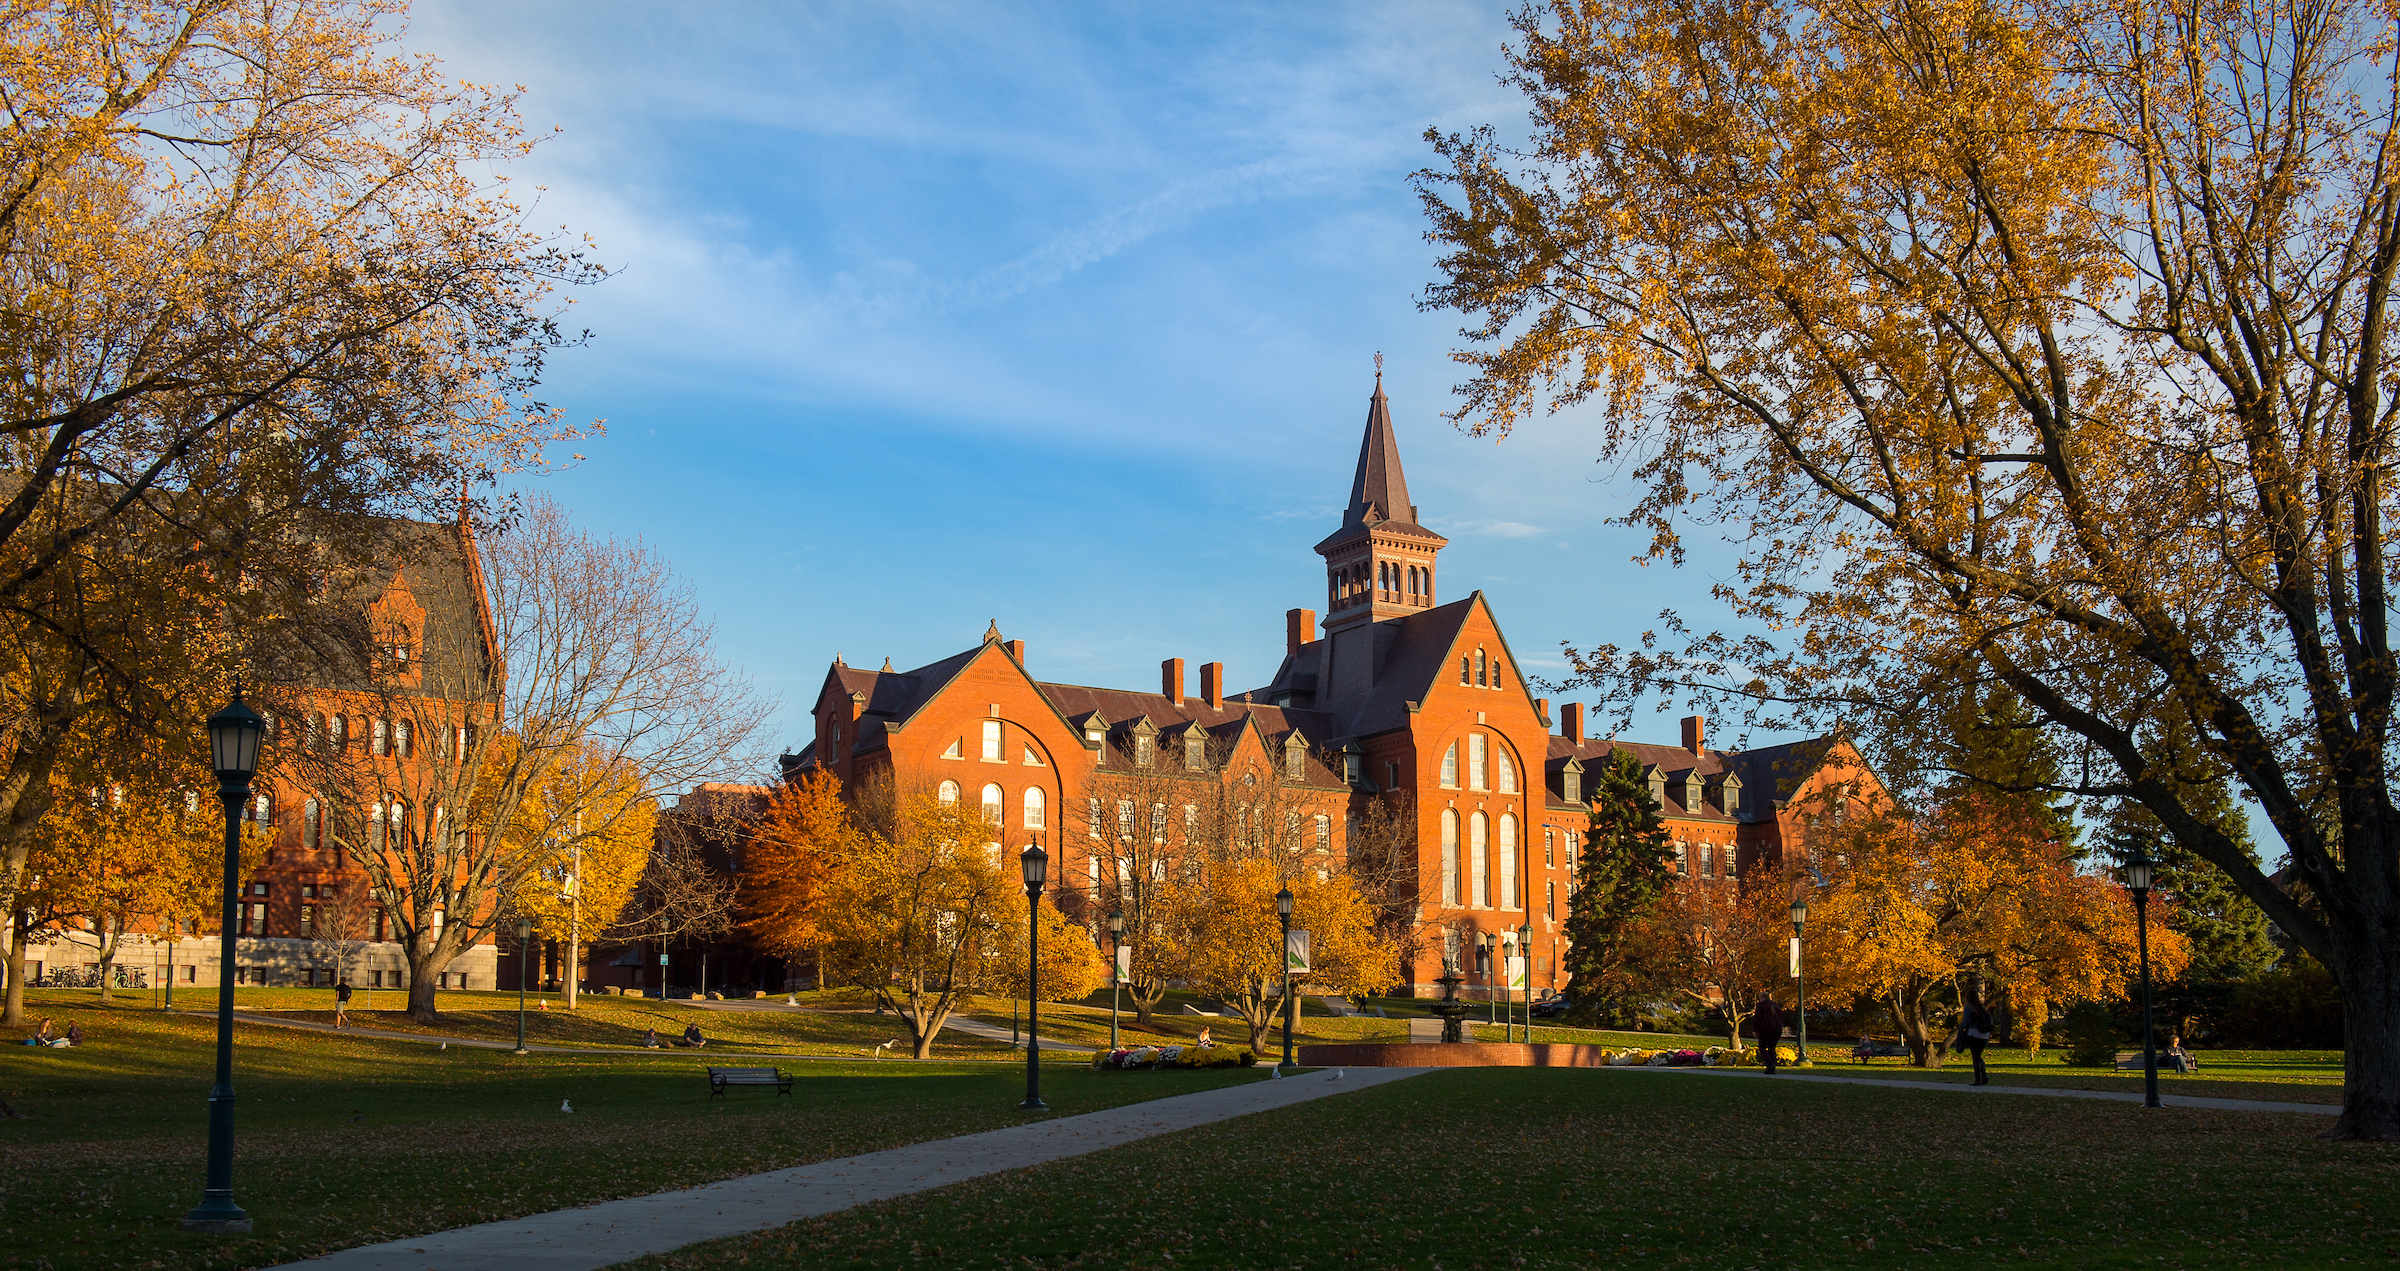 University of Vermont has experienced financial pressures brought on by COVID, along with other higher ed institutions.